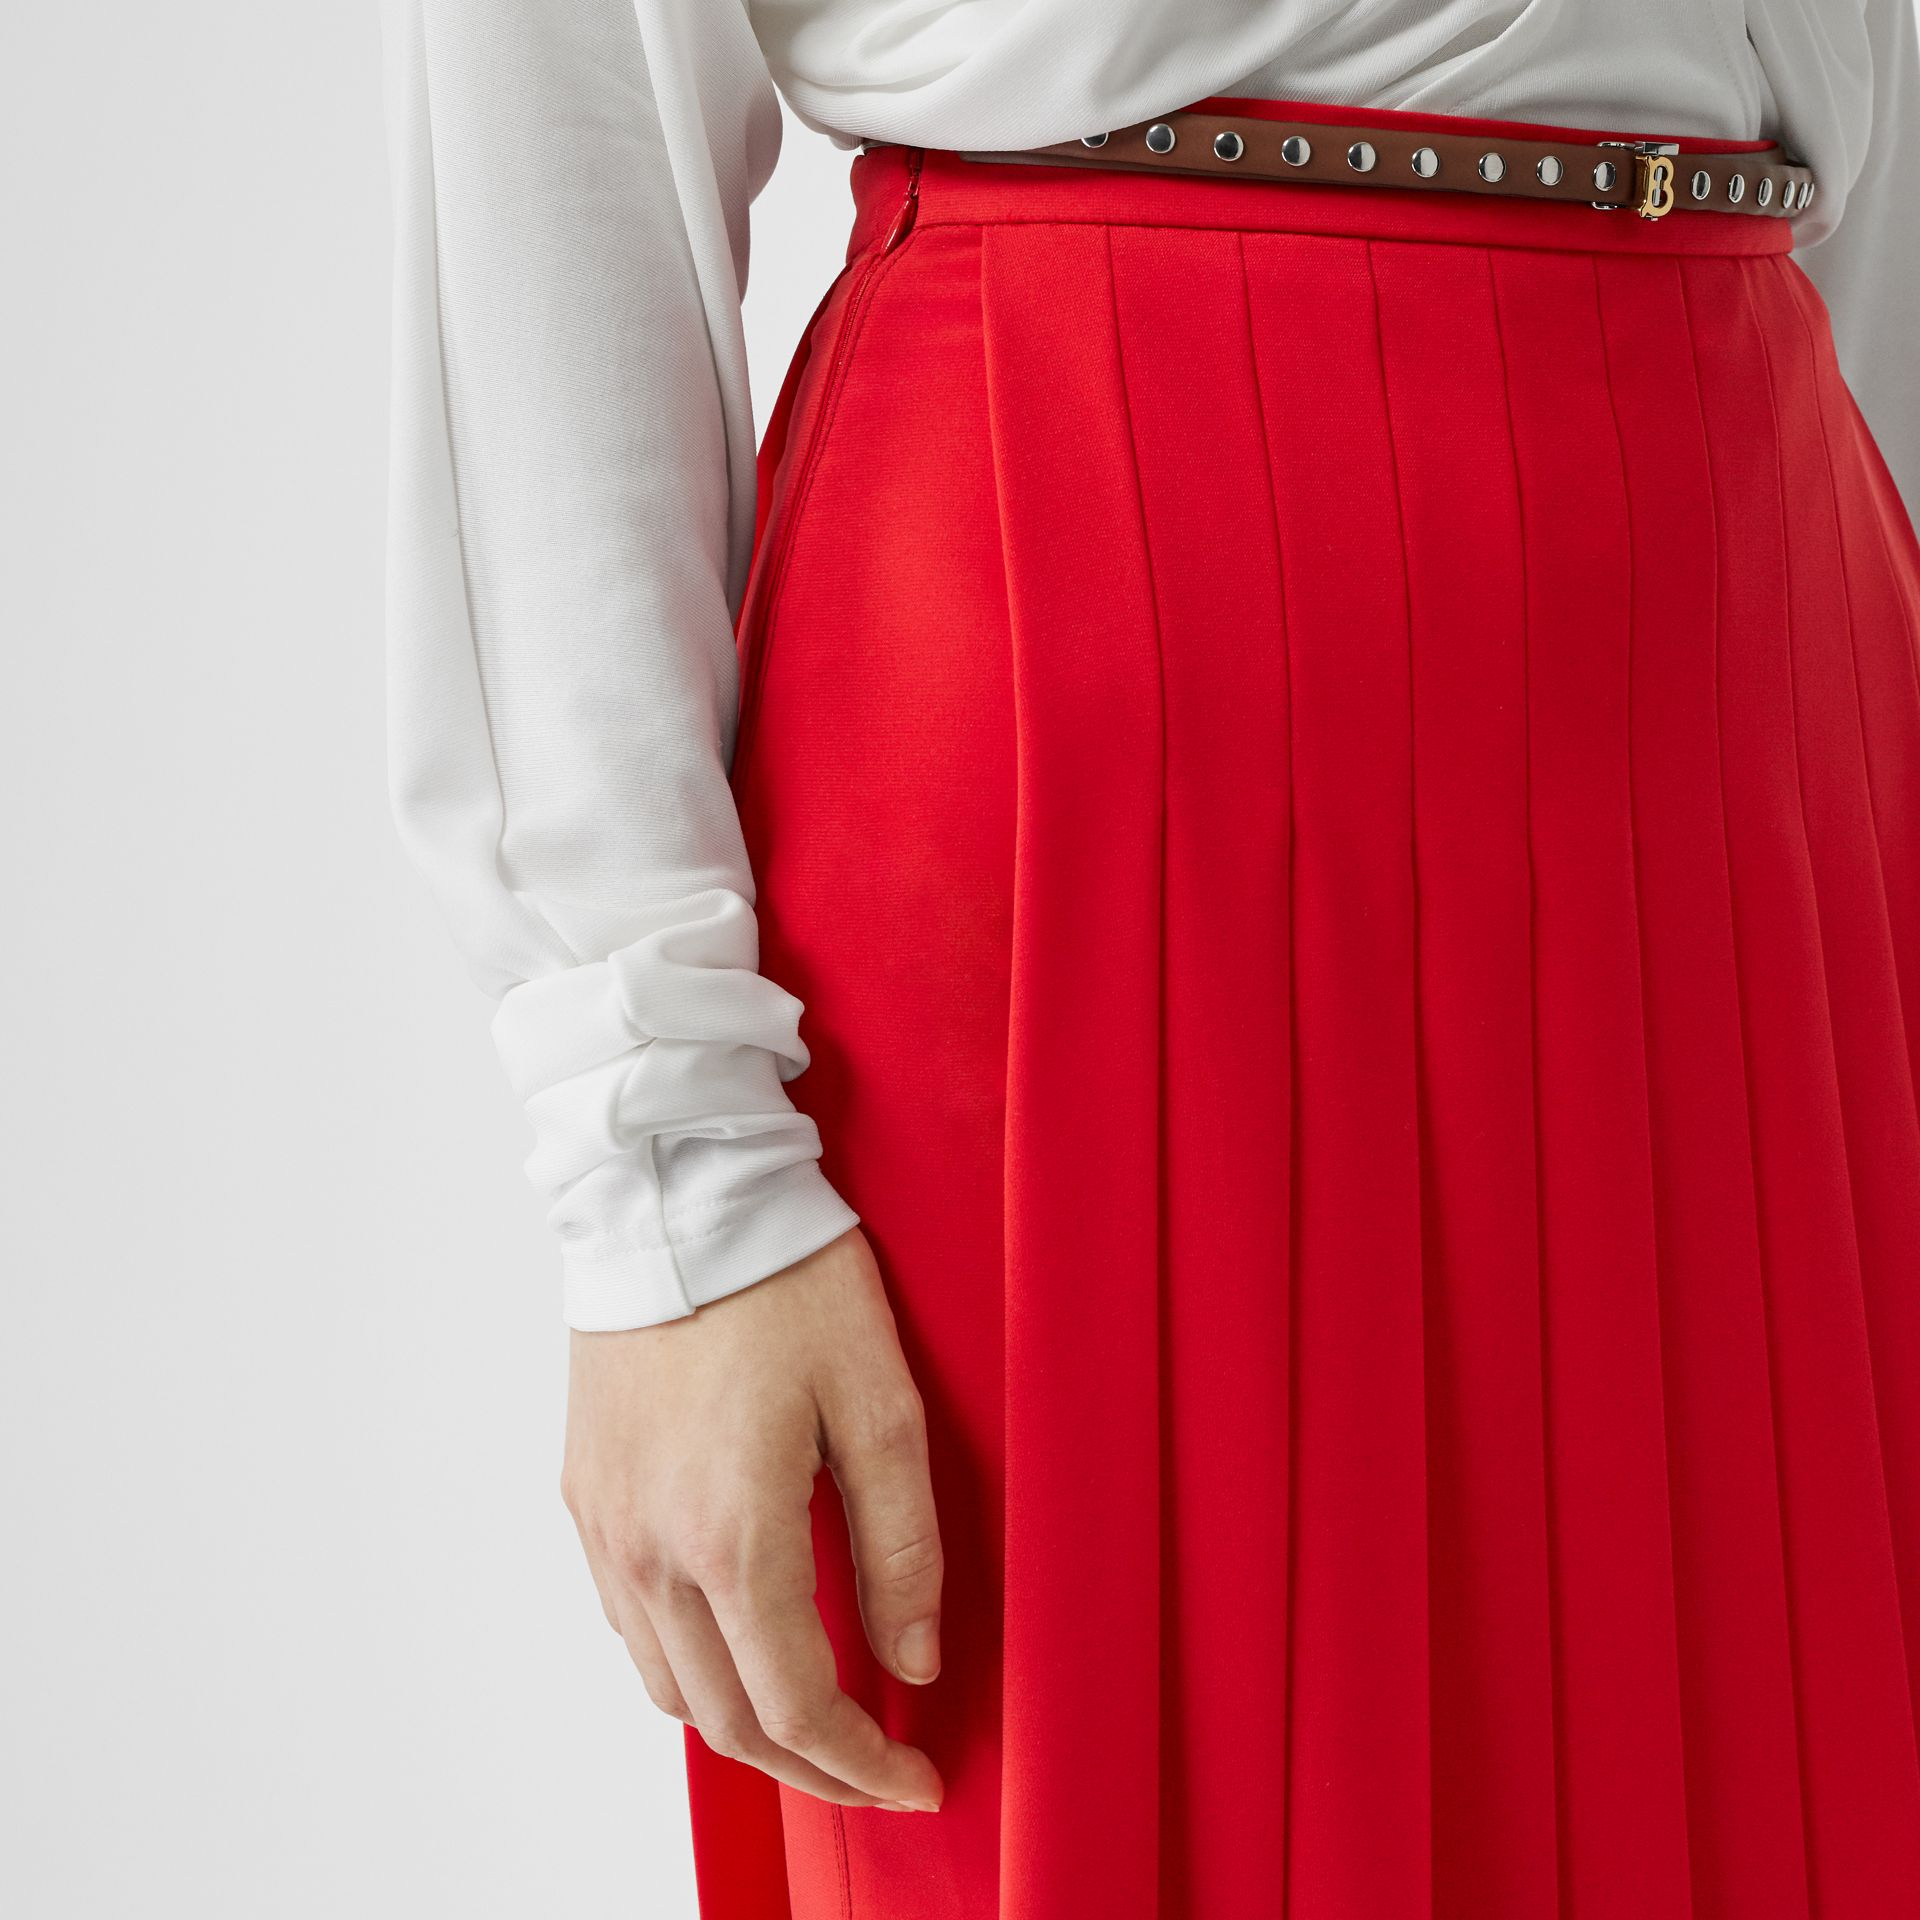 Stretch Cady Pleated Skirt in Bright Red - Women | Burberry - gallery image 1